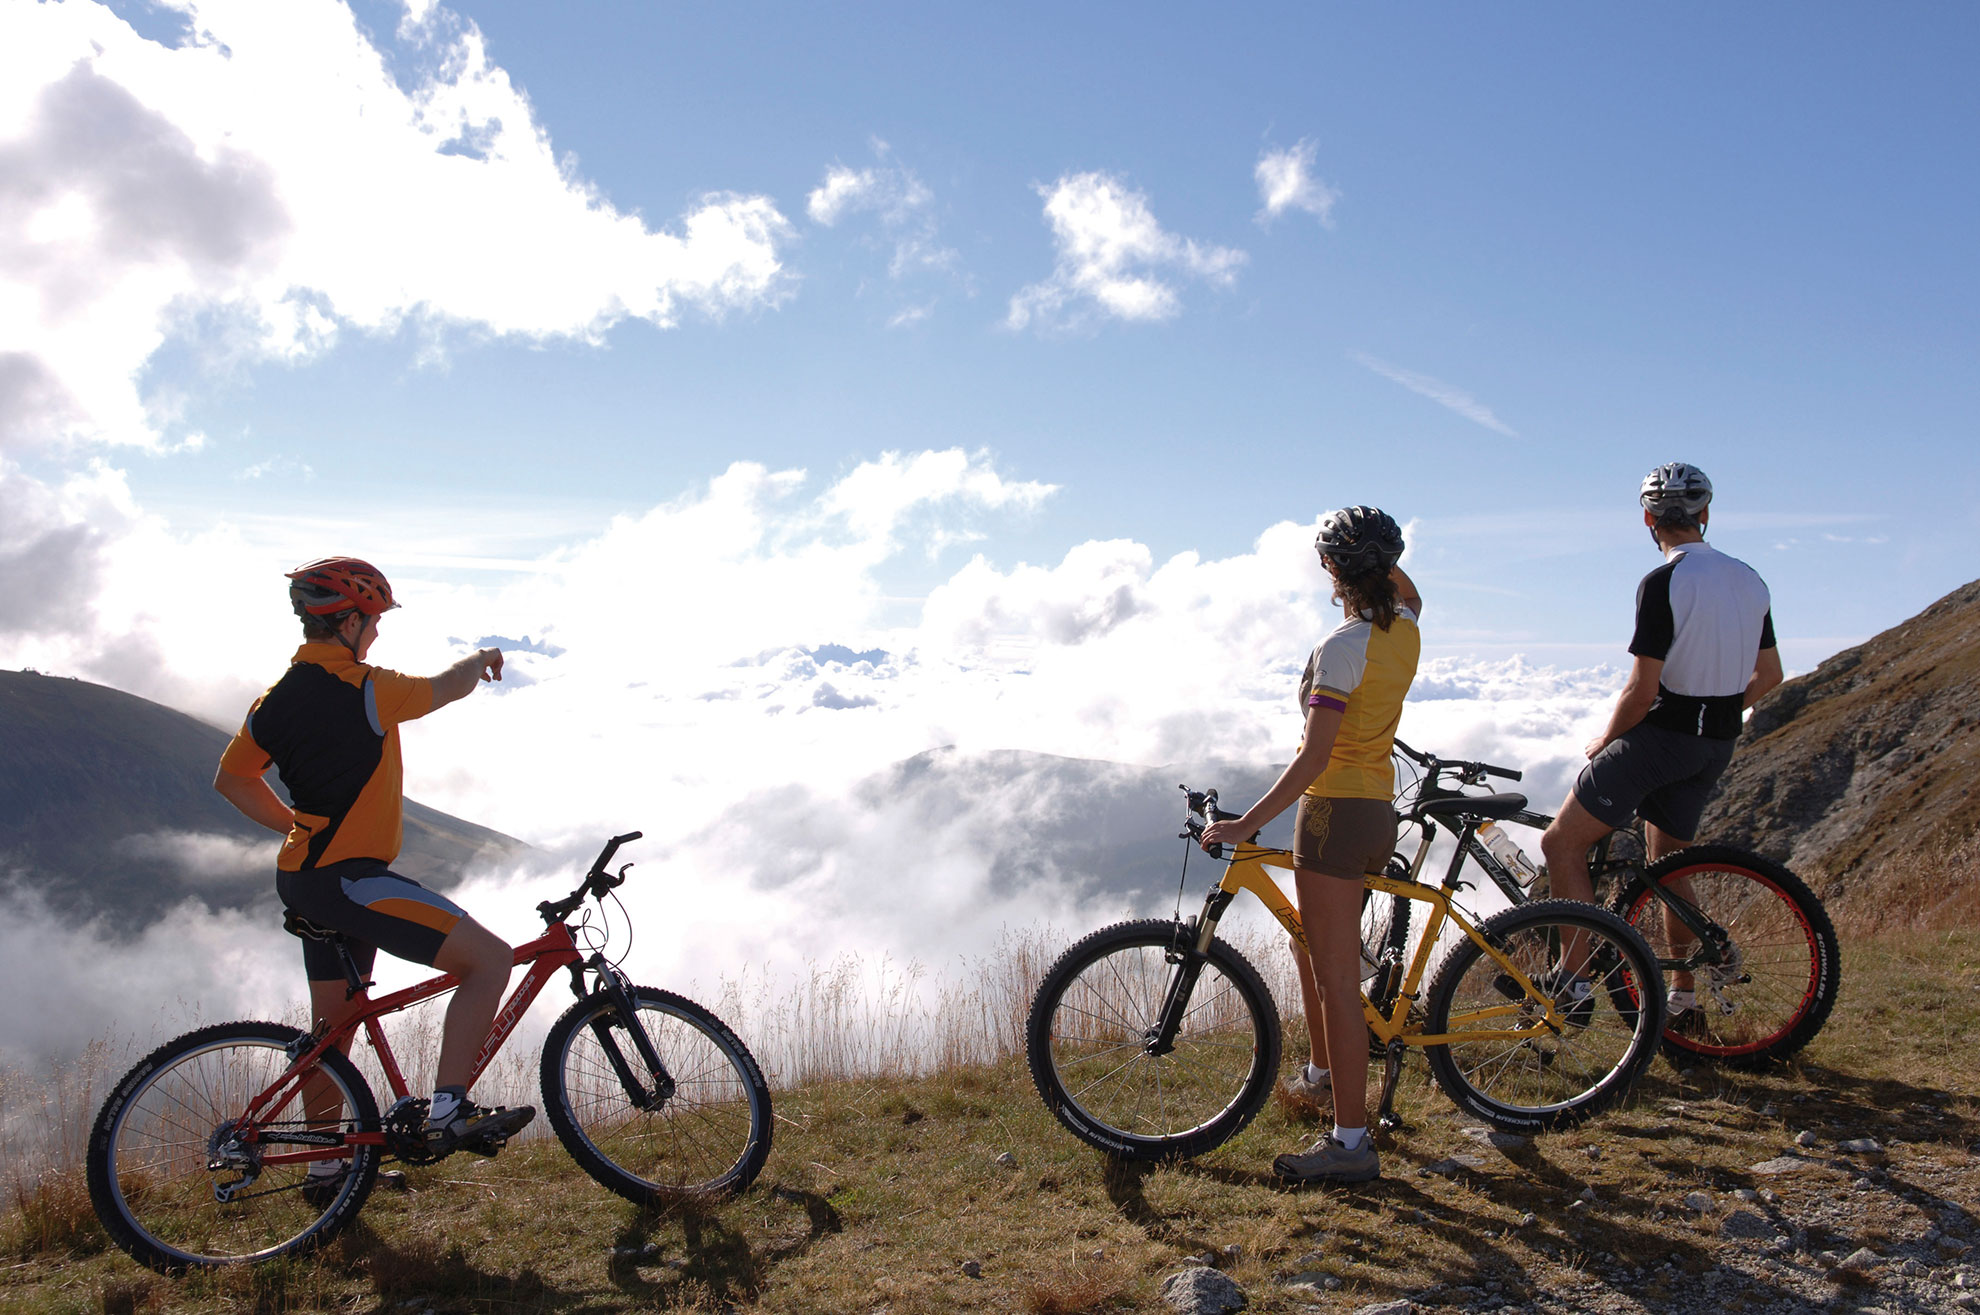 Bike The Dolomites With Expert Local Guides